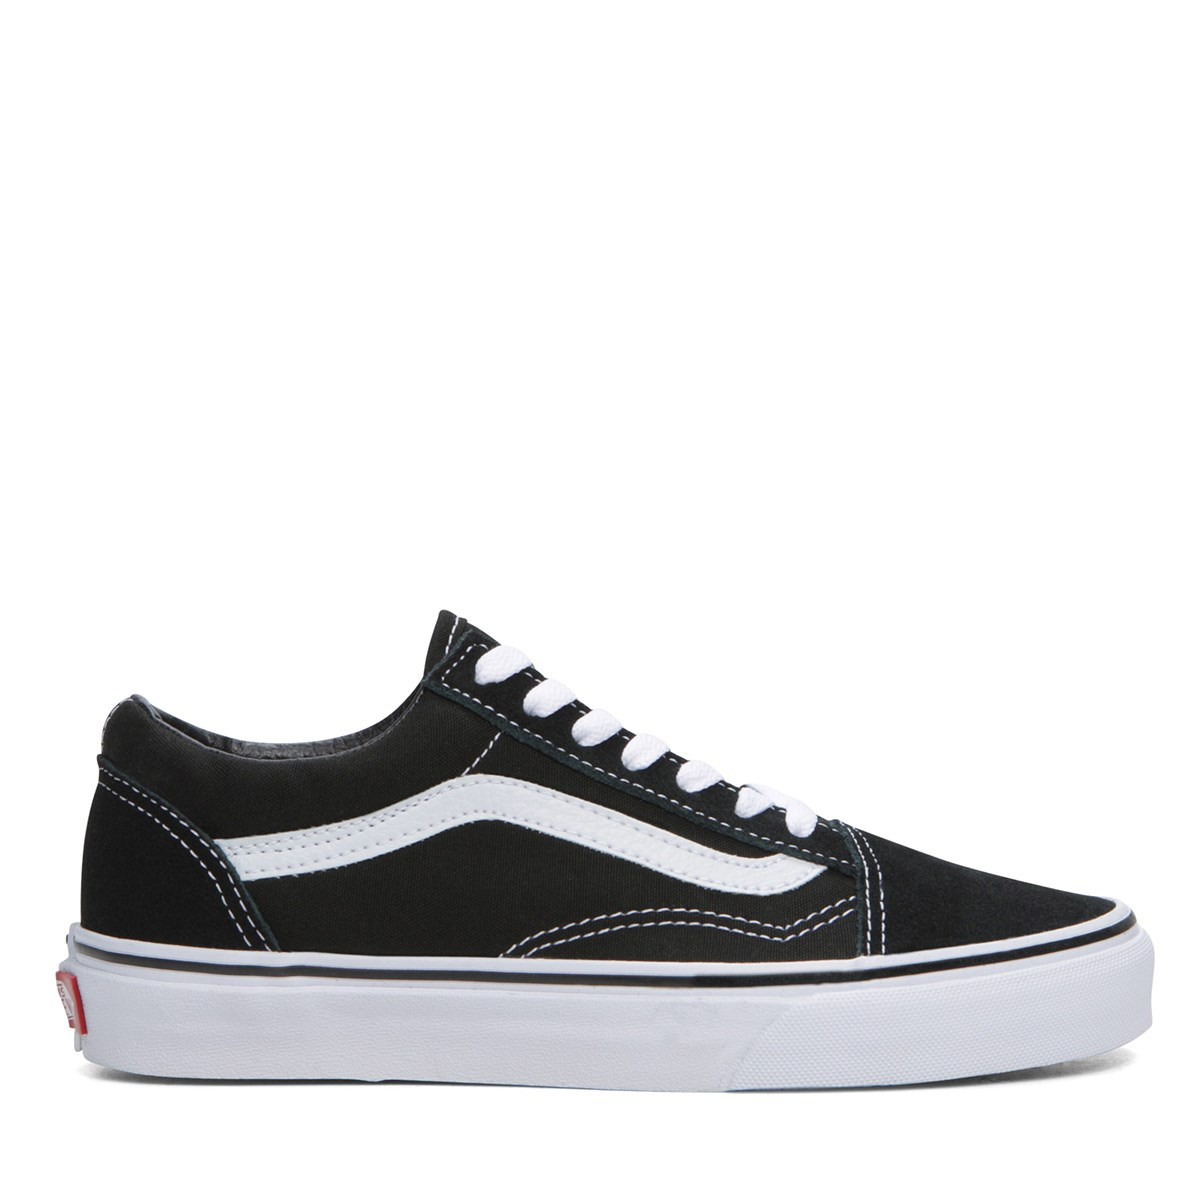 8a4e04d5c445 Old Skool Black   White Sneaker